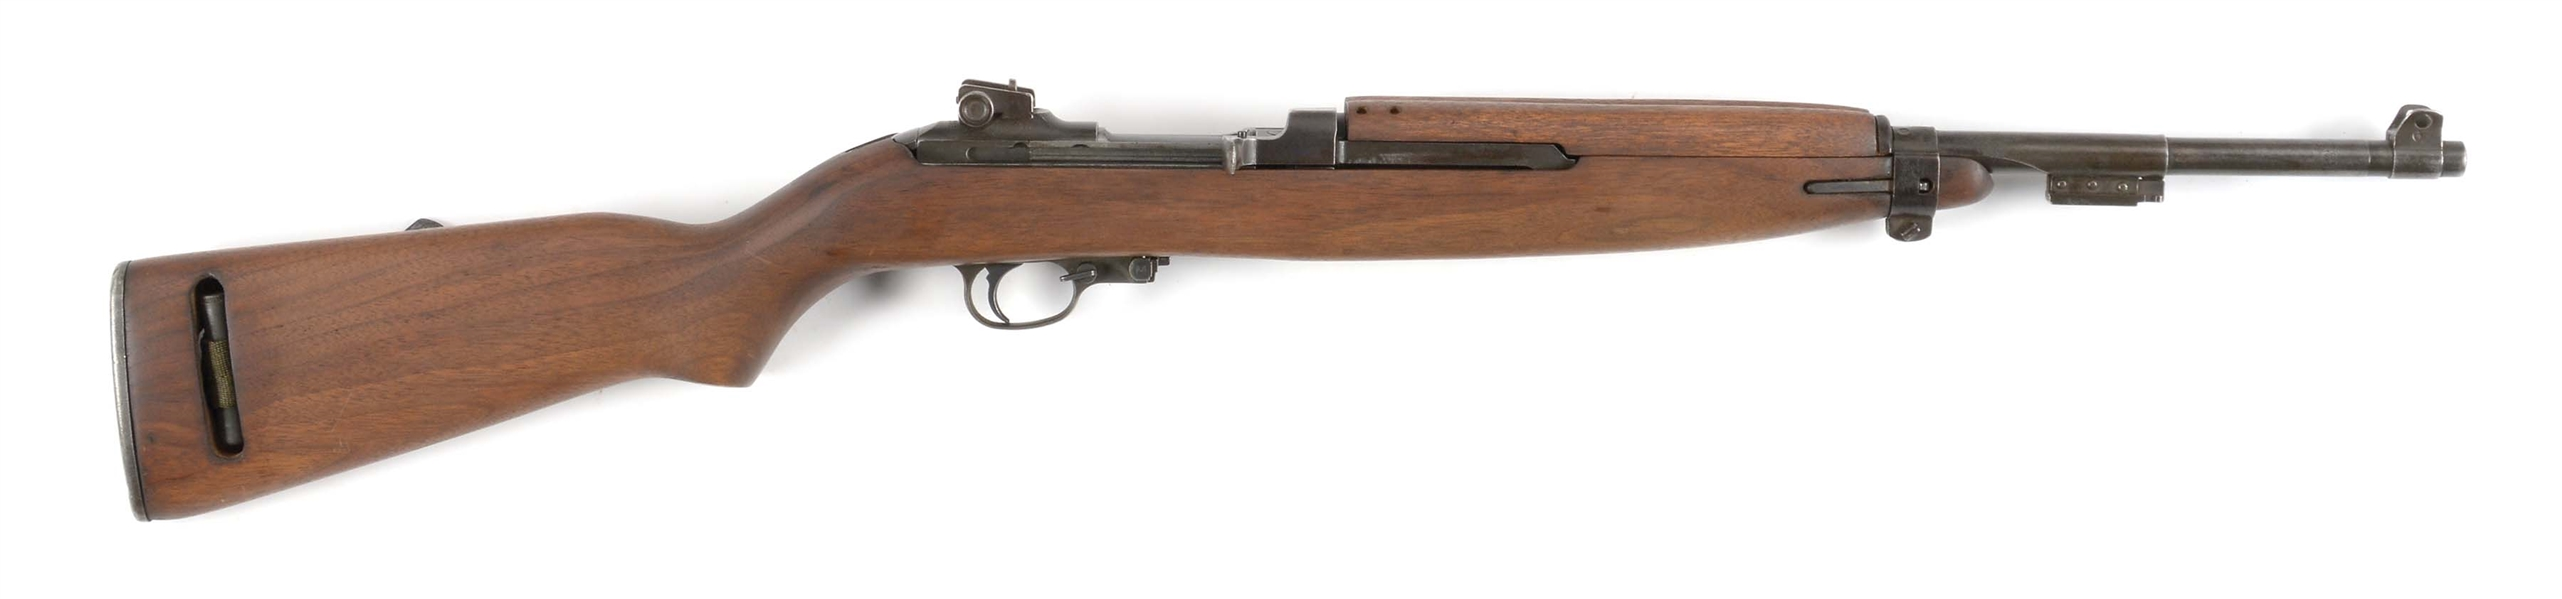 (C) INLAND M1 CARBINE SEMI AUTOMATIC RIFLE.